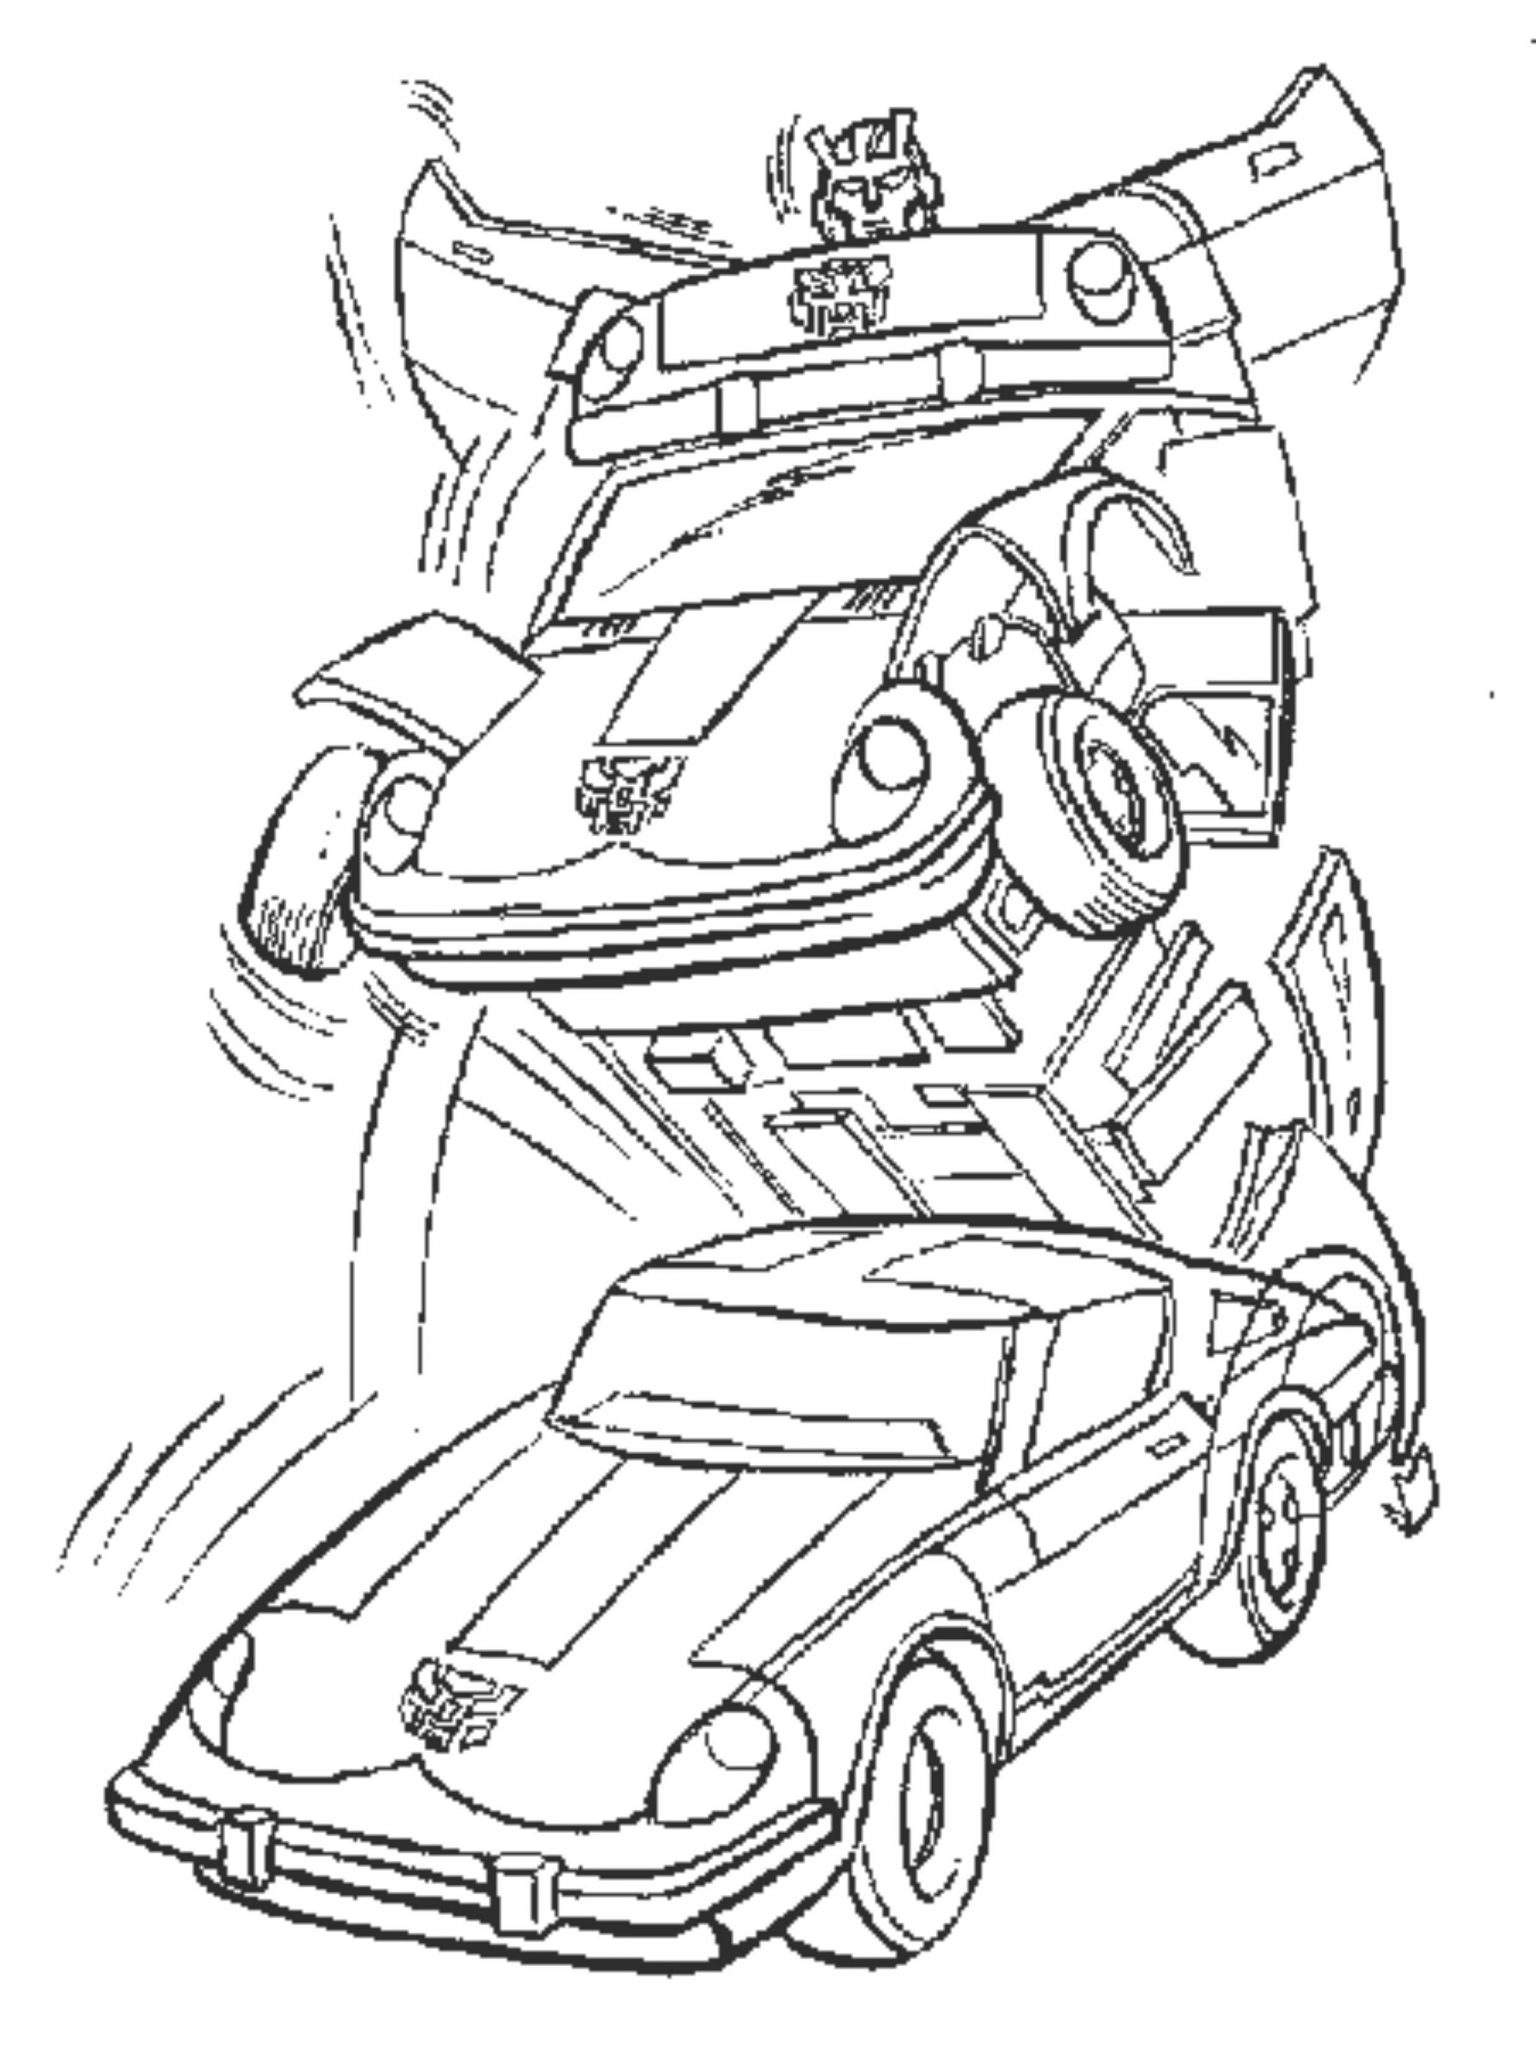 transformers bumblebee coloring pages bumblebee transformers coloring pages gtgt disney coloring pages coloring bumblebee pages transformers